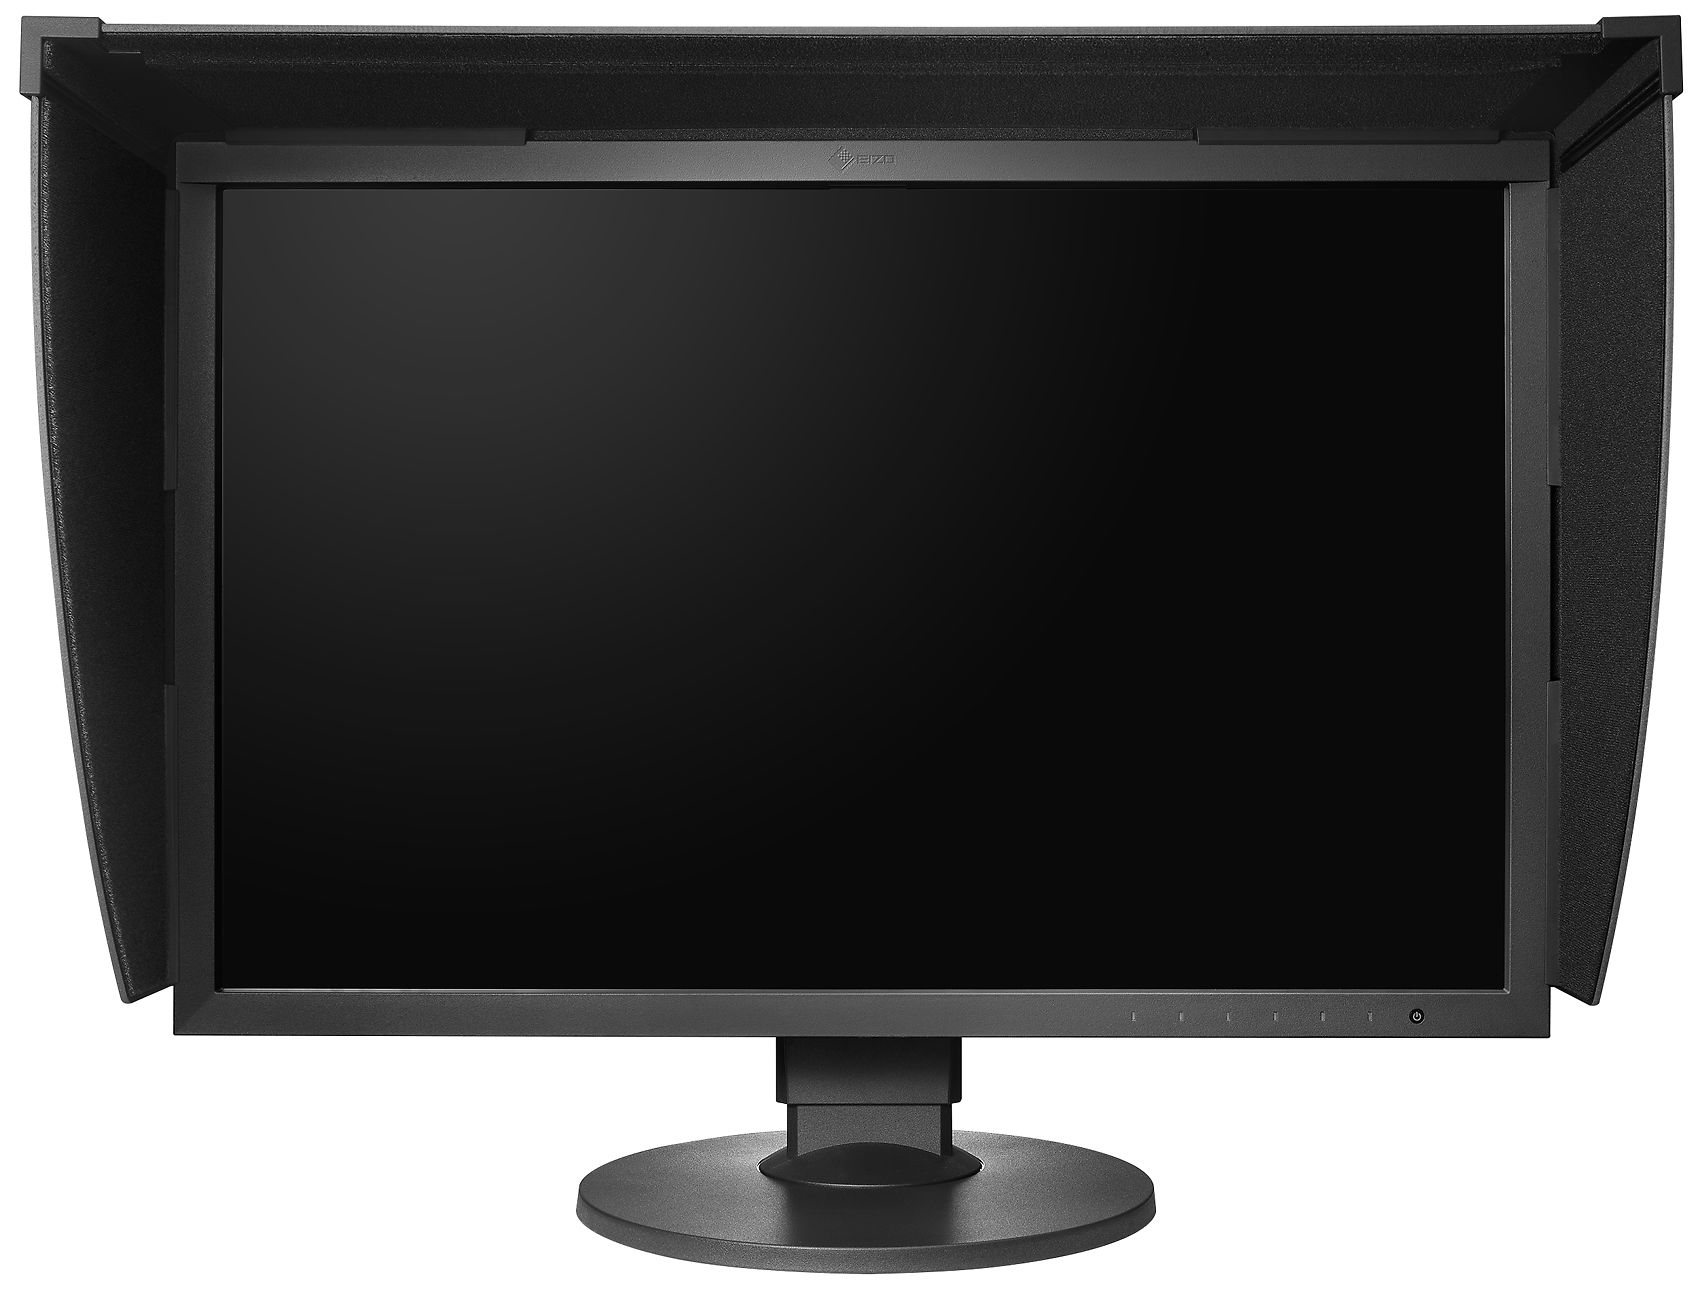 "Eizo ColorEdge CG2420 24"" Monitor Image"